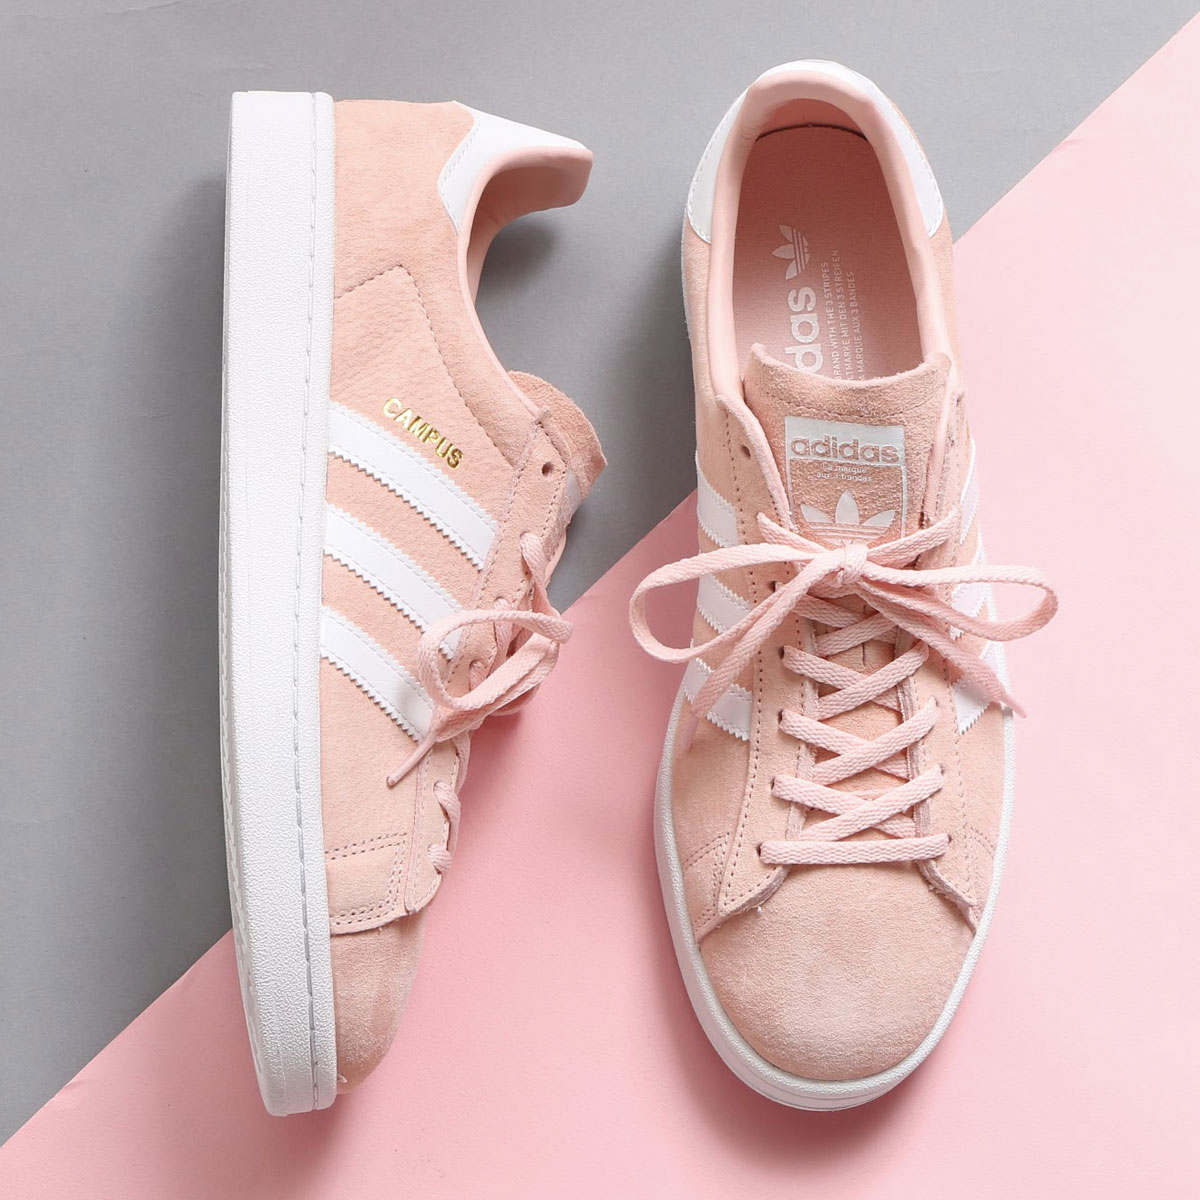 adidas Originals CAMPUS W (Adidas original scan pass W) (Ice PinkRunning WhiteCrystal White) 17FW I